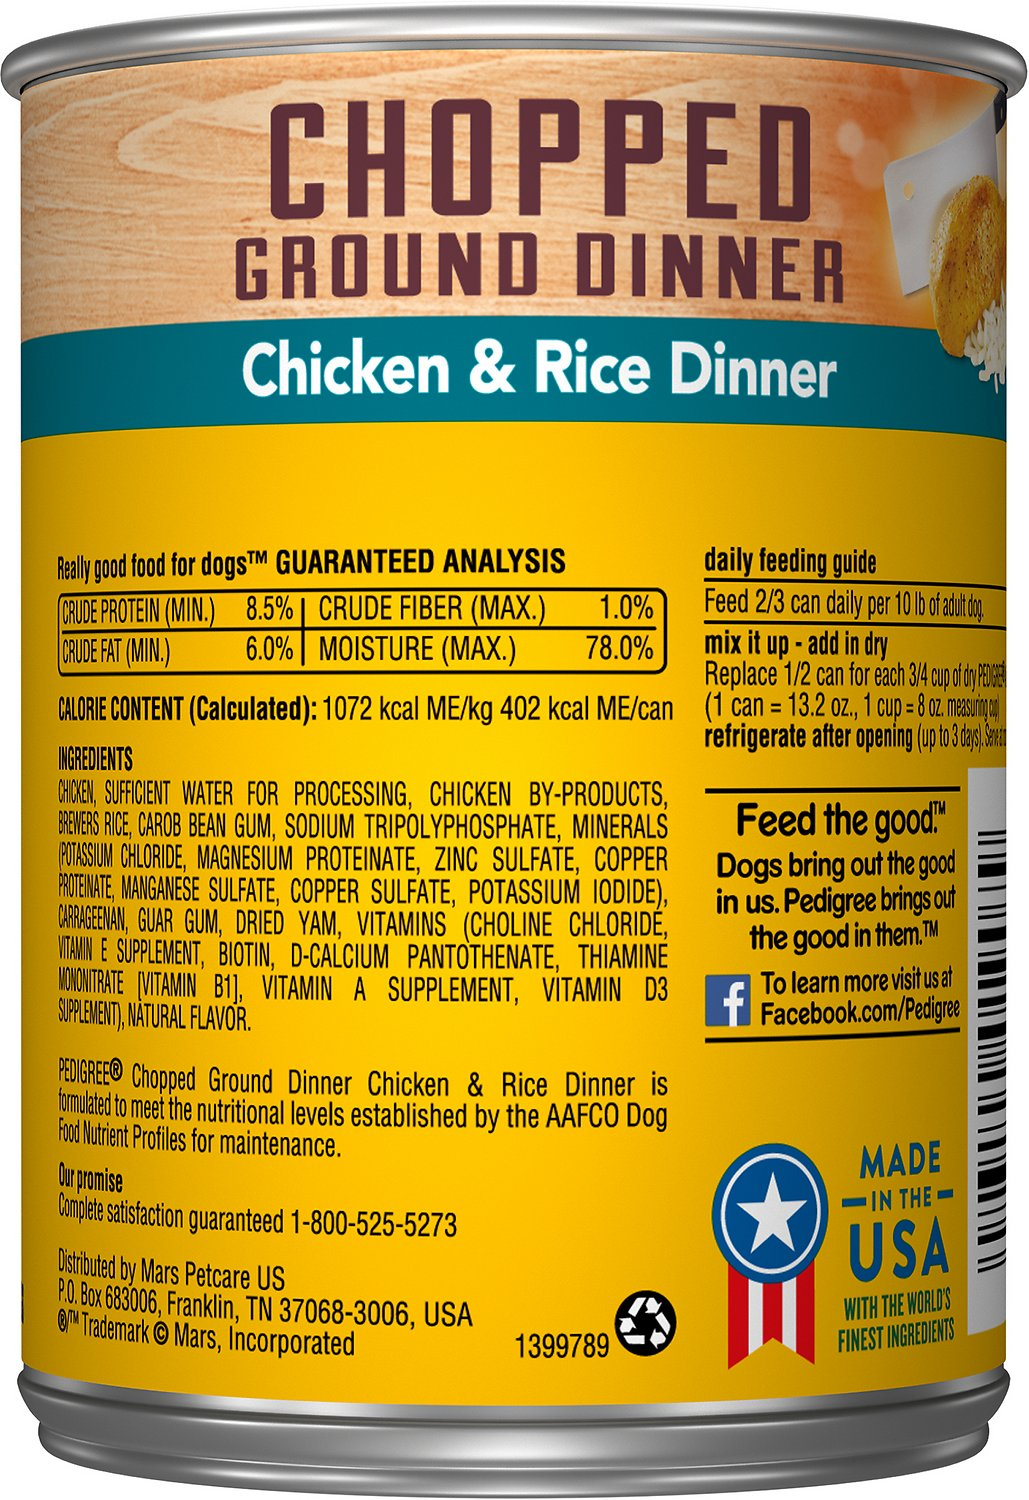 Best Canned Dog Food >> Pedigree Chopped Ground Dinner Chicken & Rice Dinner Canned Dog Food, 13.2-oz, case of 12 ...